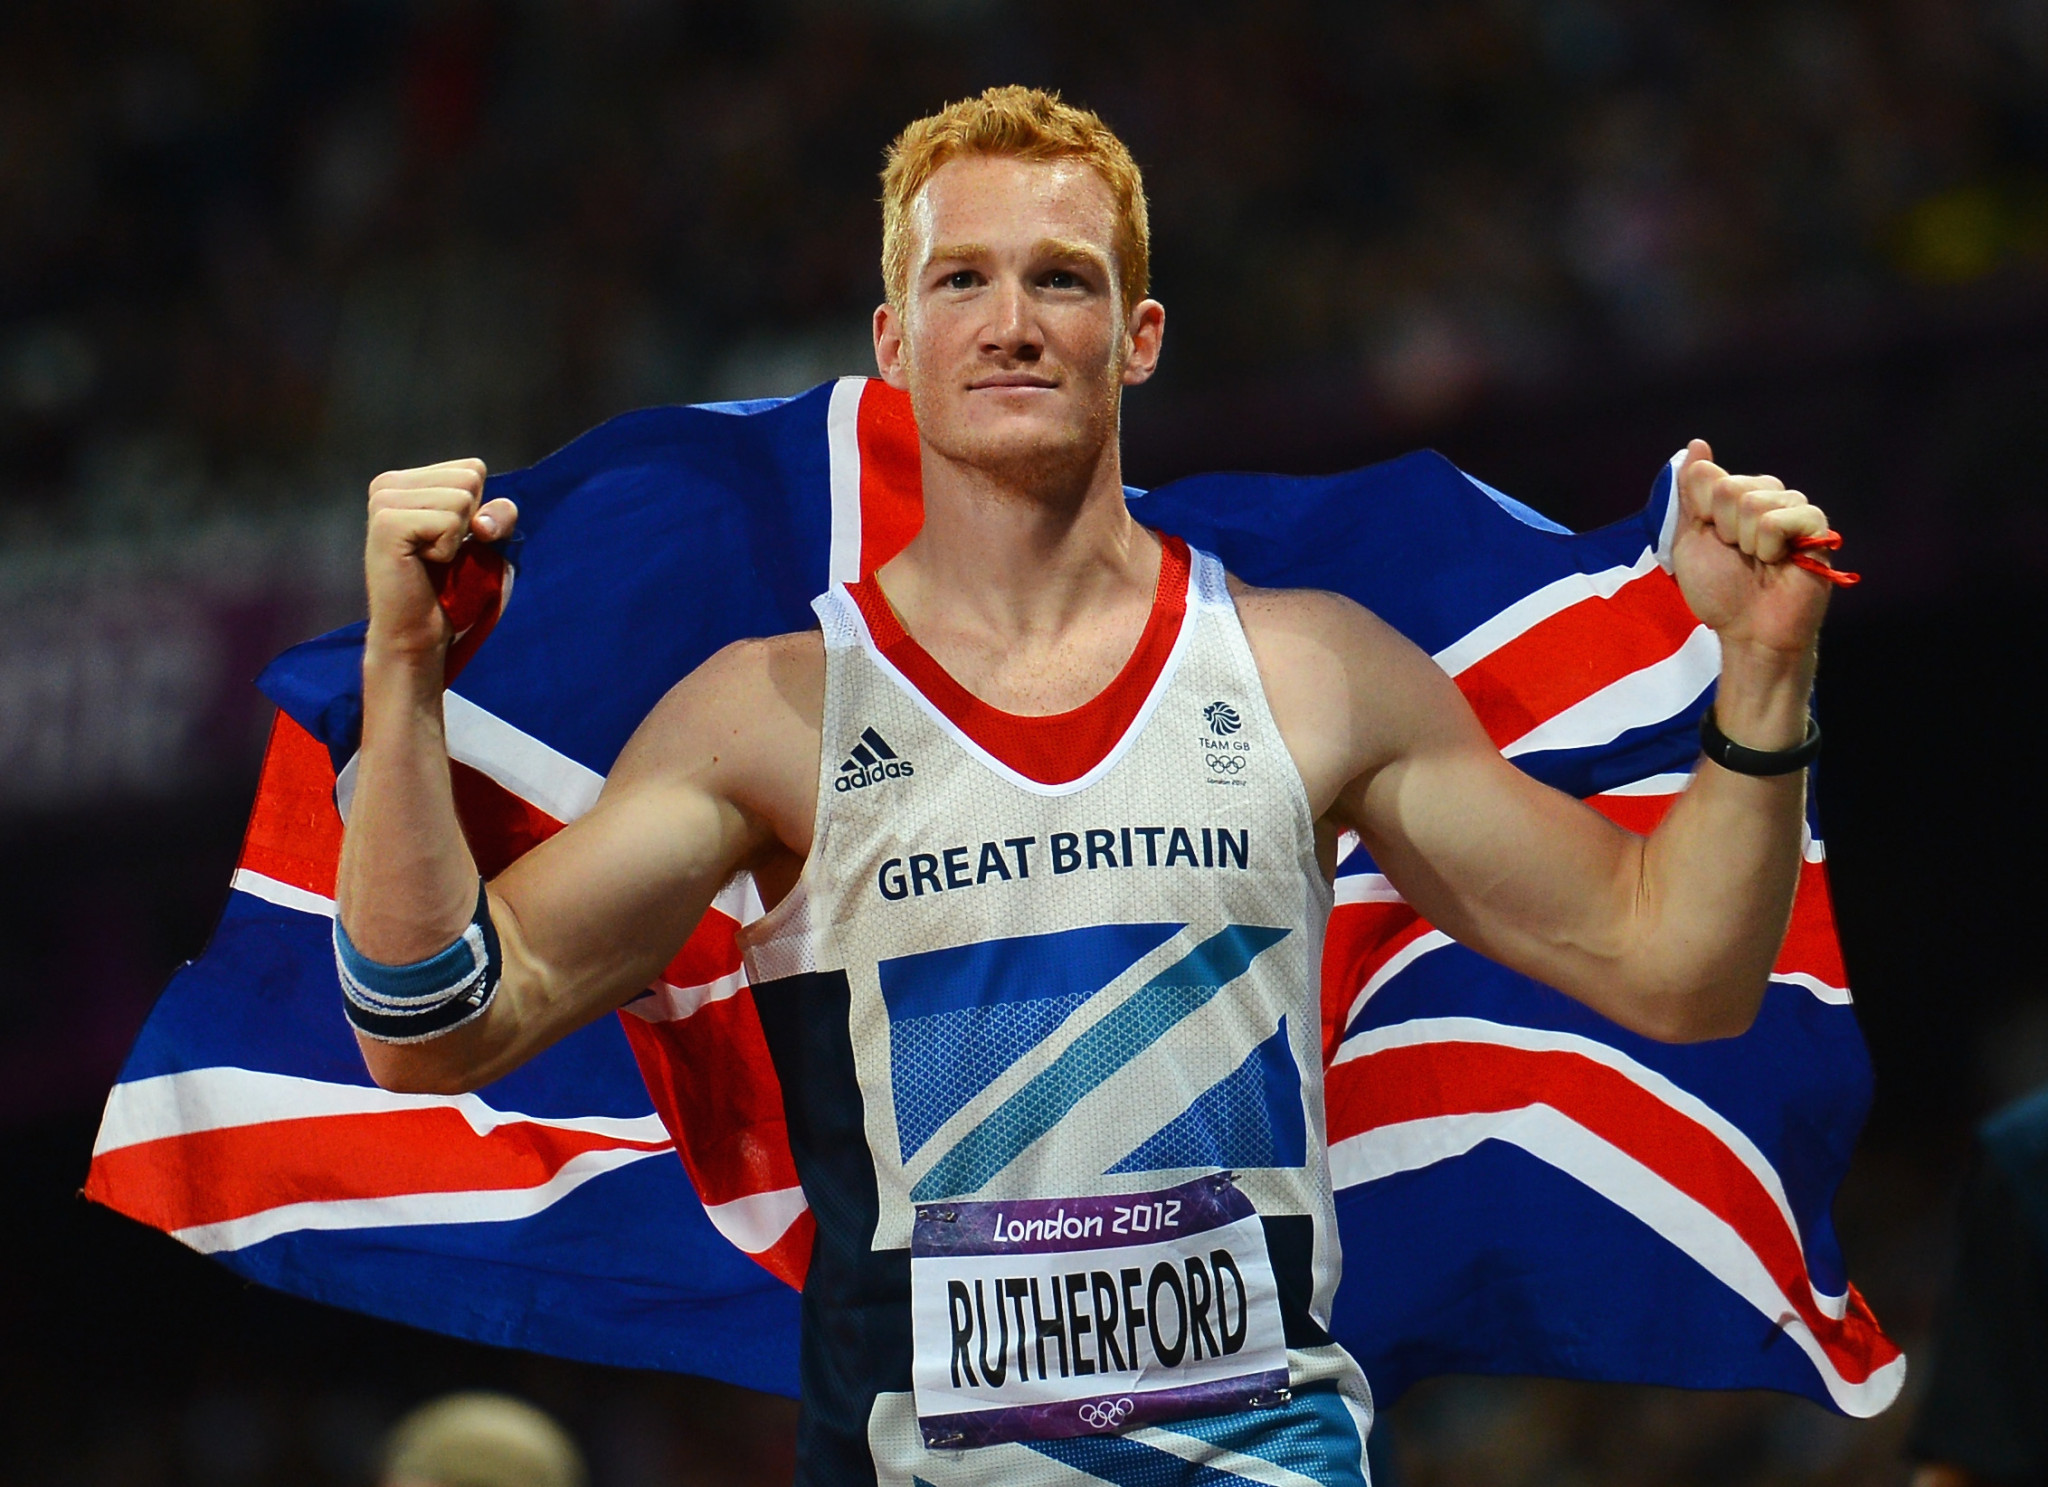 London 2012 long jump champion Rutherford aiming for bobsleigh success at Beijing 2022